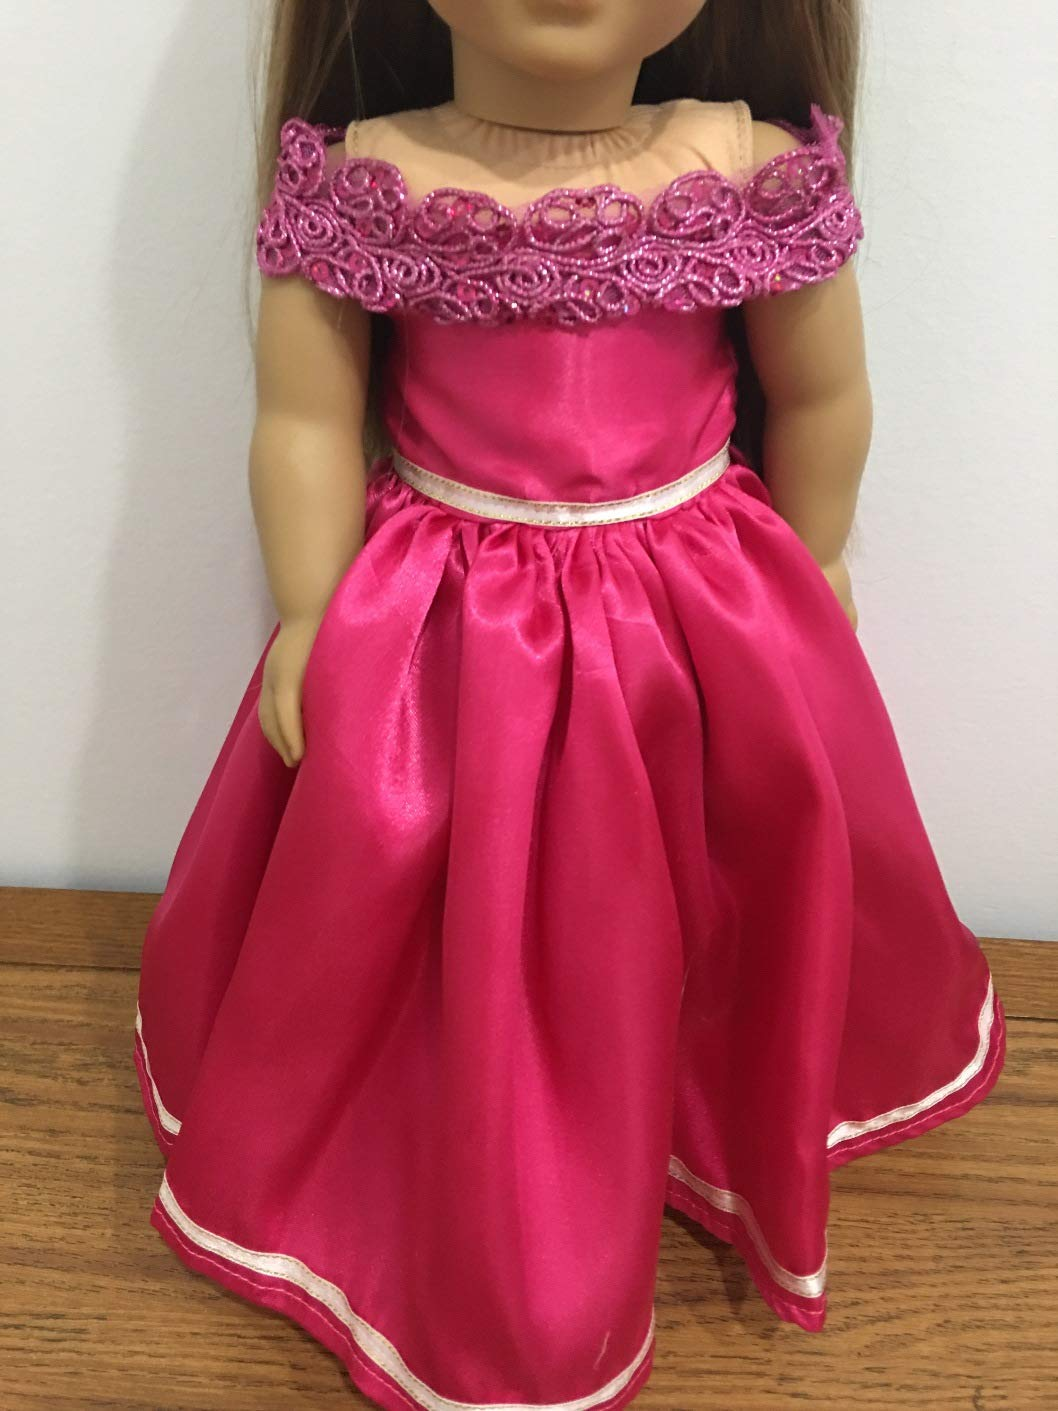 Christmas Party Dress Pink Fairy or Princess Dress Handmade Fits 18' American girl Doll Clothes, Our Generation or My Life As doll